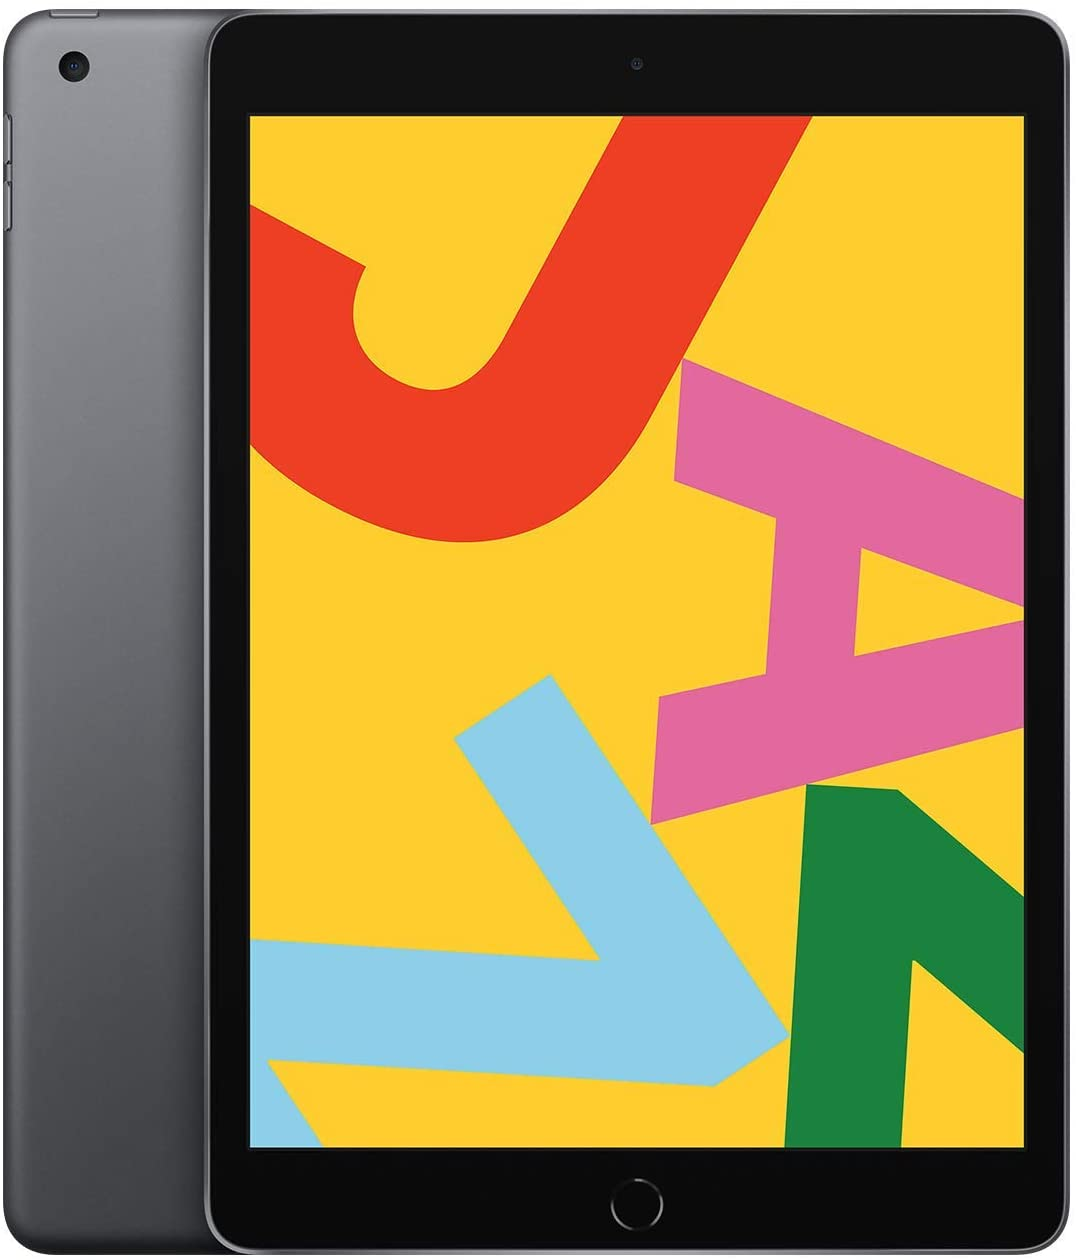 Apple iPad (10.2-Inch, Wi-Fi, 128GB) - Space Gray (Latest Model) (Renewed)